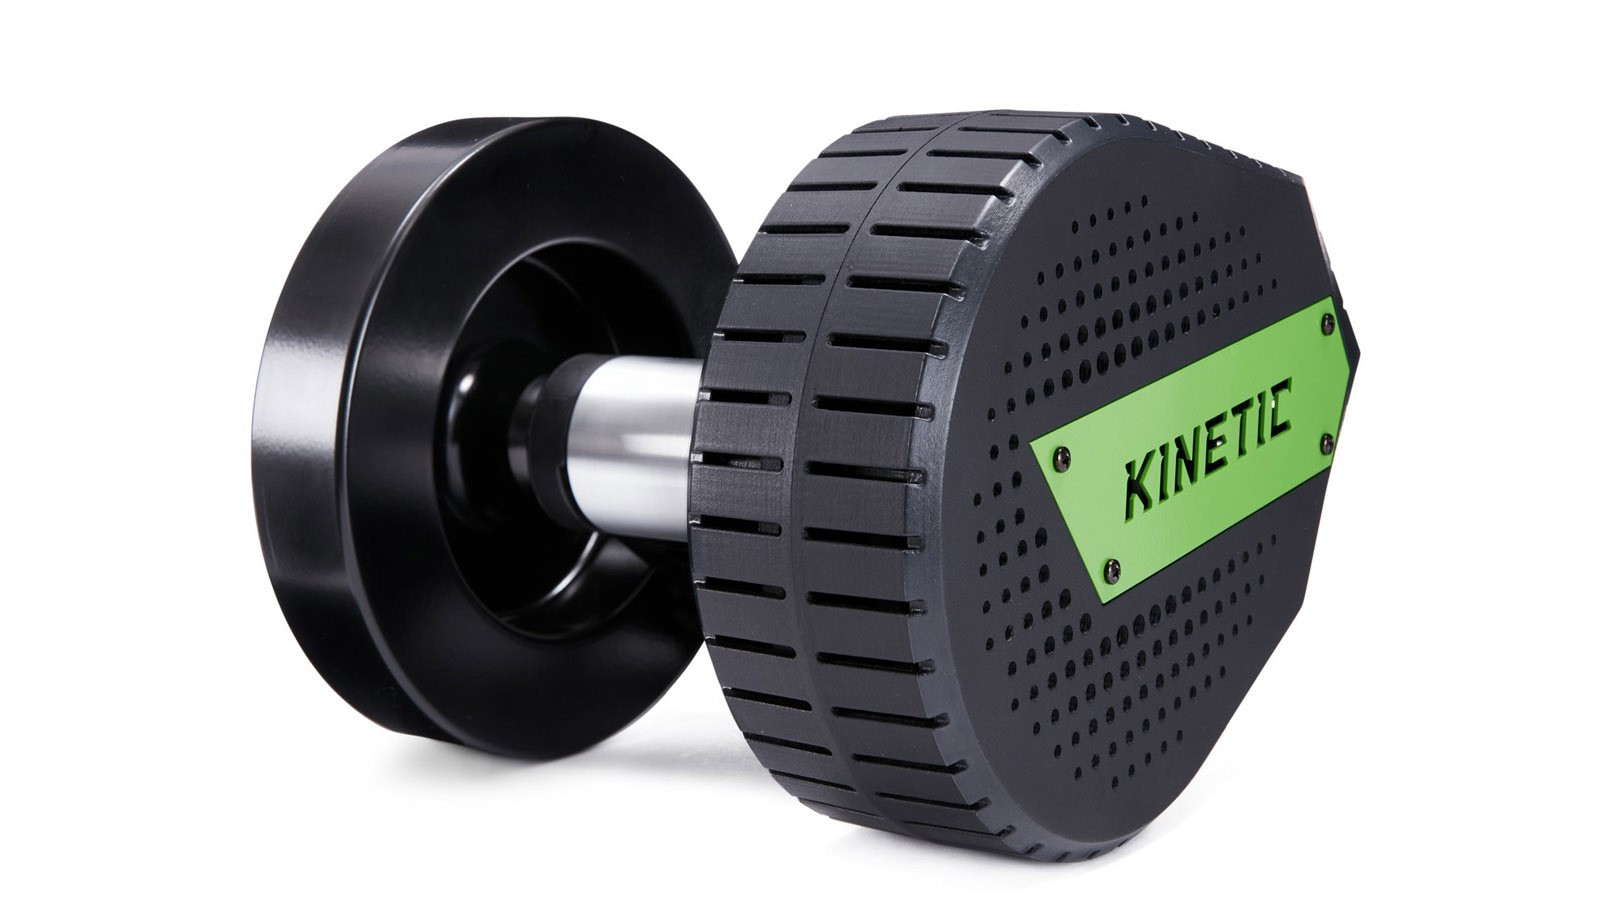 The Smart Control unit is also available as an upgrade for the Kinetic's range of indoor trainers